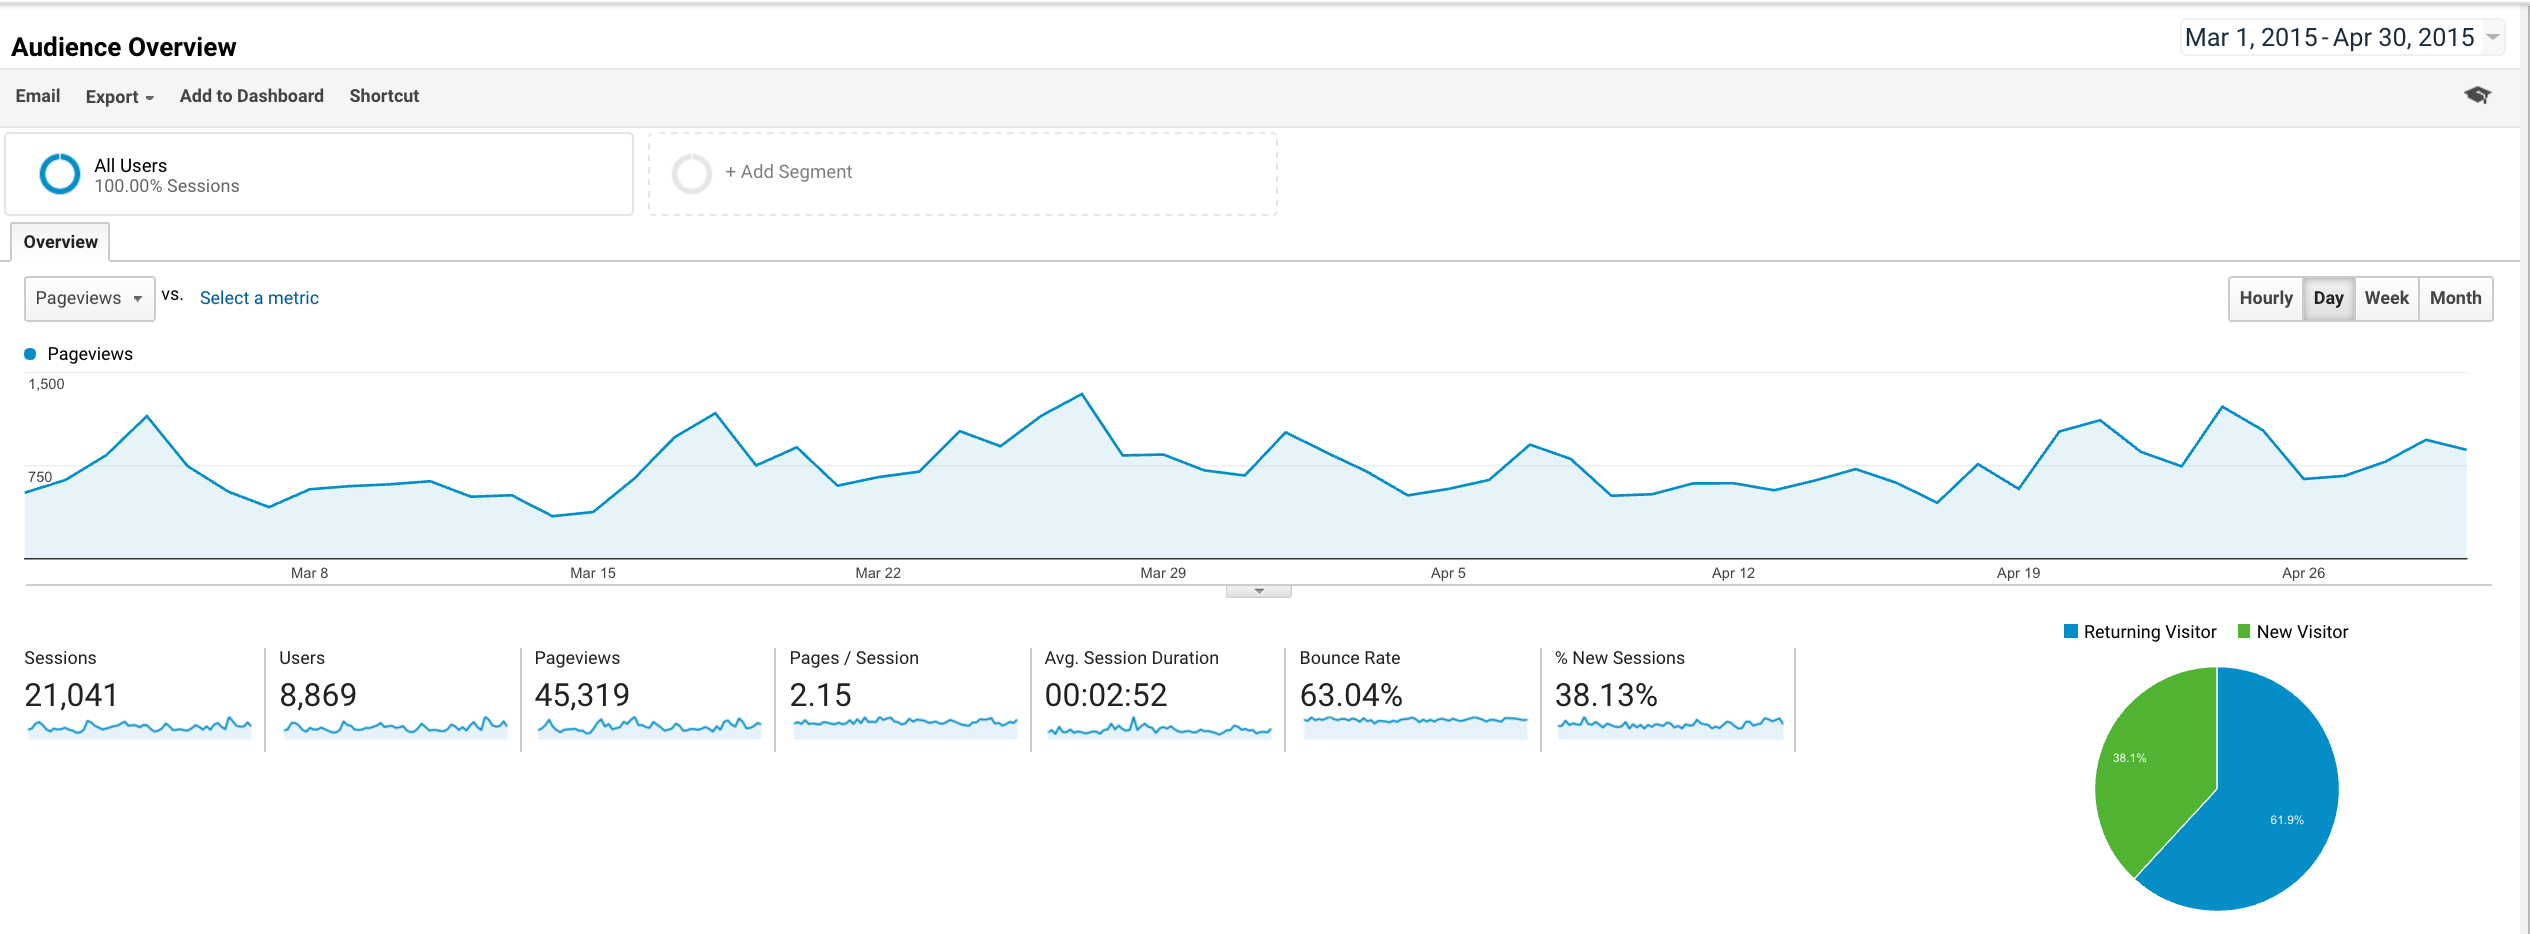 Google Analytics March/April 2015 traffic, around release of Peter Singer's book